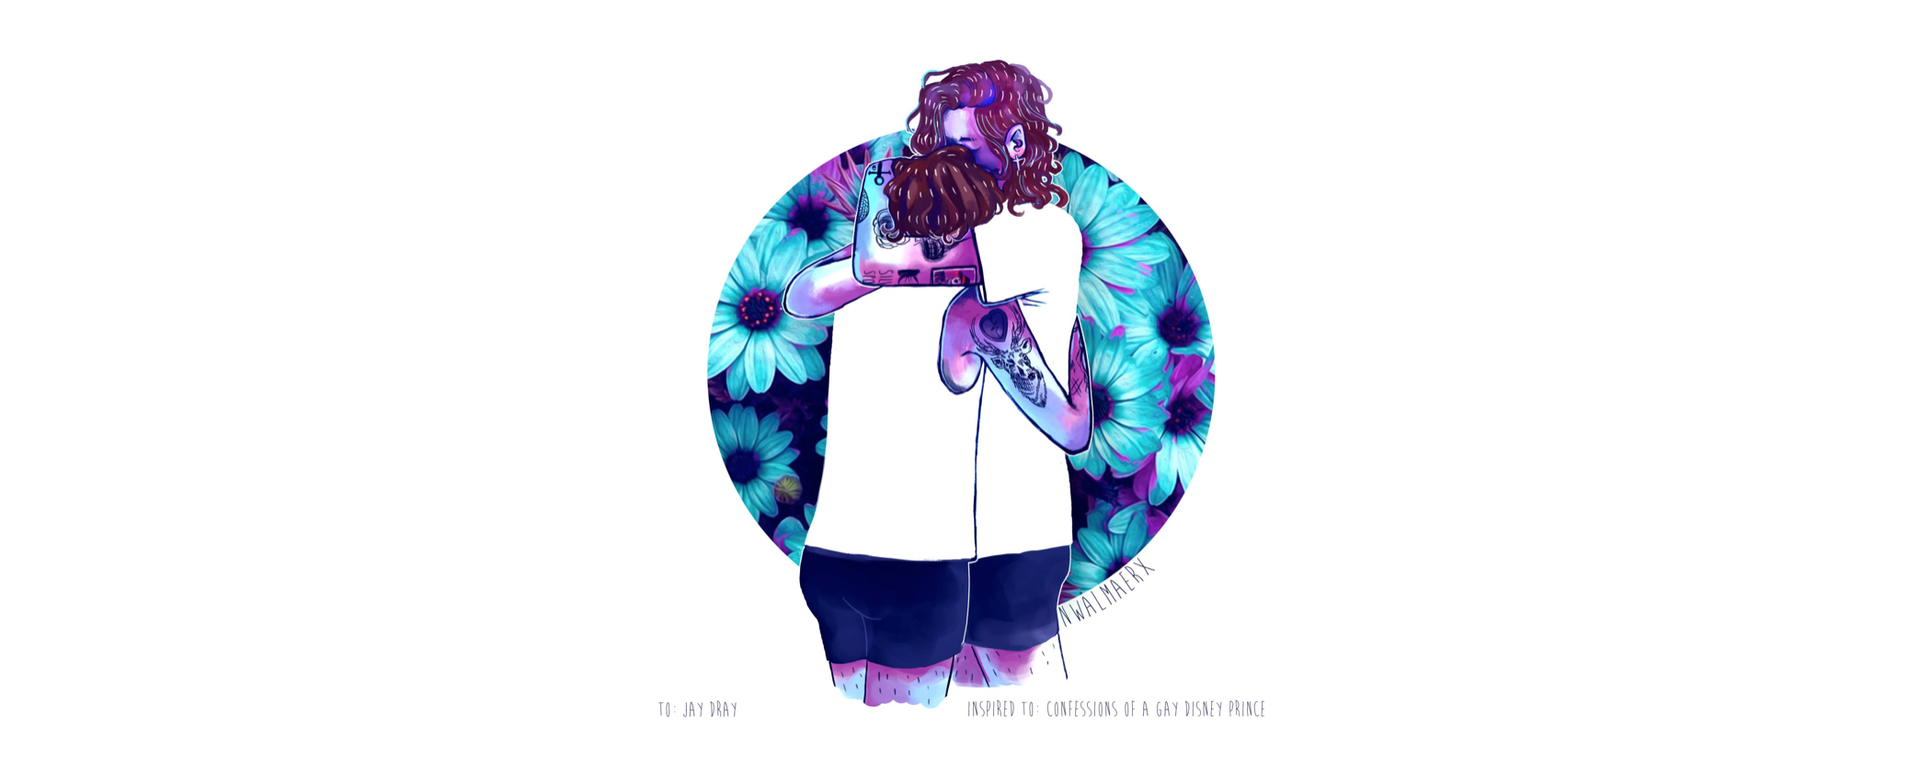 Story: Jayme DrayCover Art: betweencurls Trailer: 1DFanGirl128Fanart: Fan Submissions